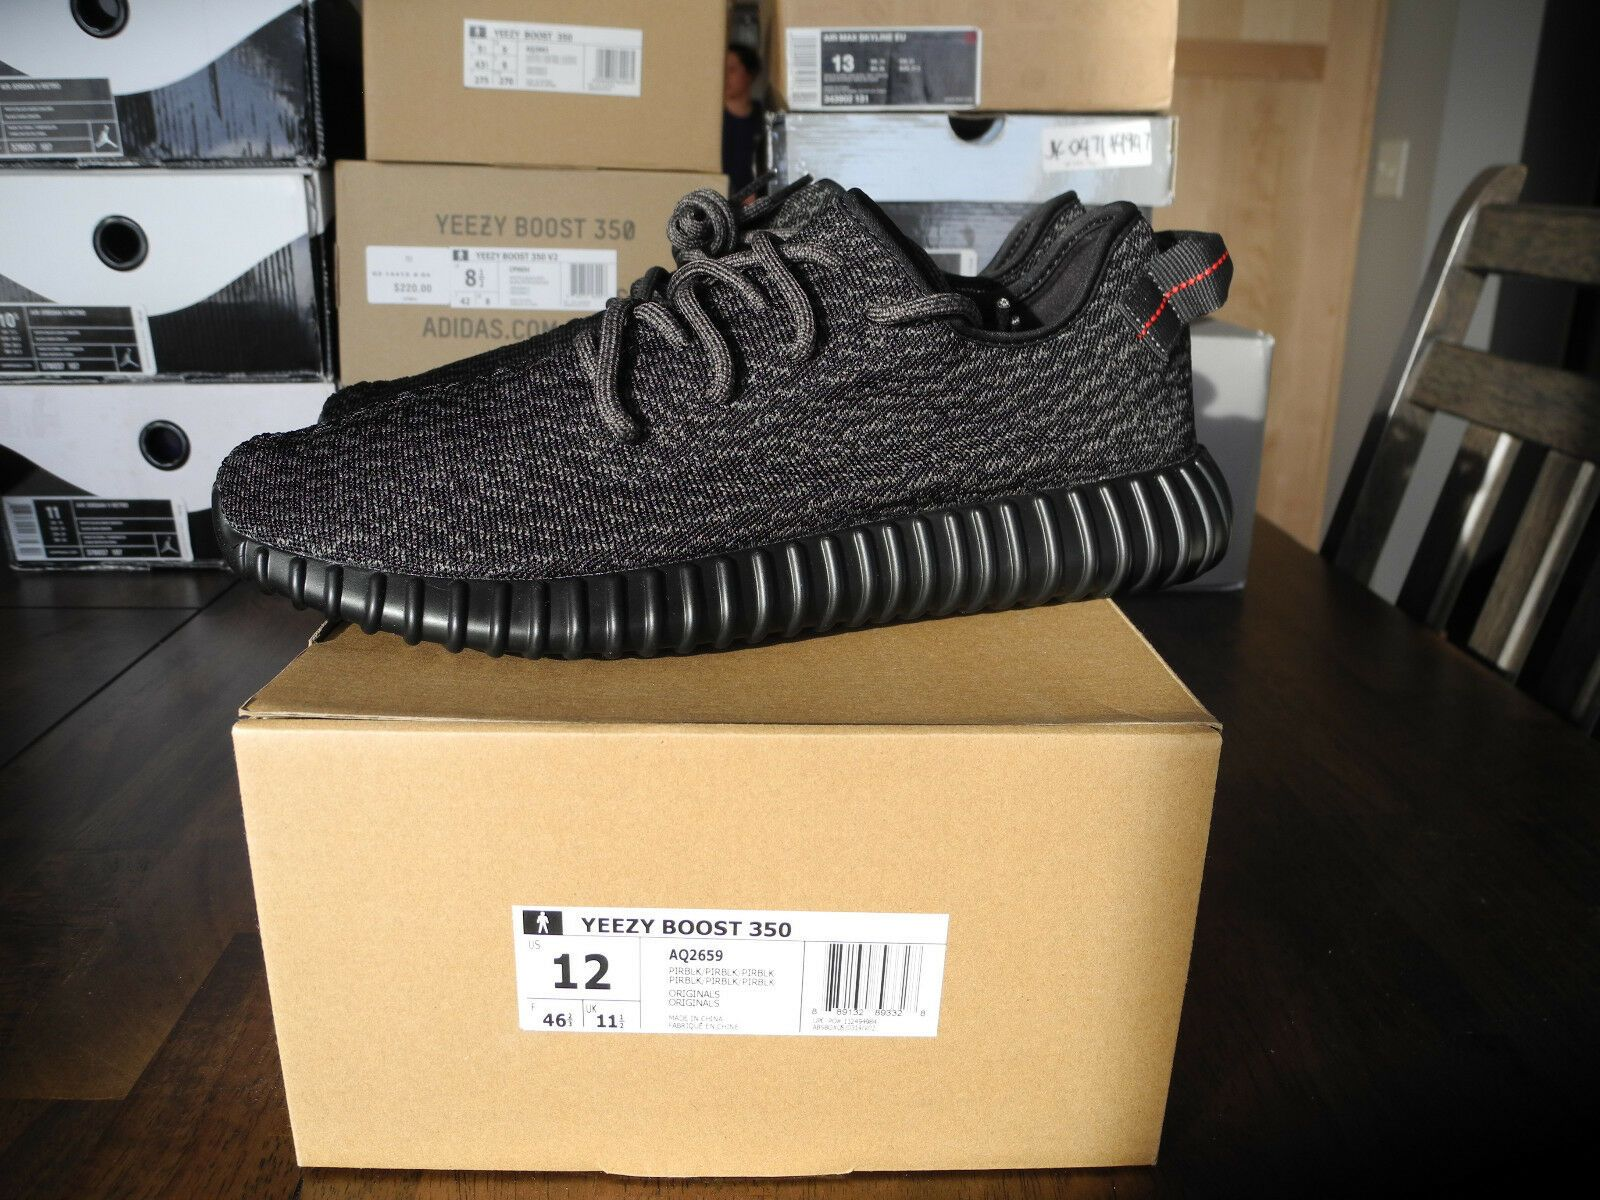 2a21014f8 Details about Adidas yeezy boost 350 Pirate Black size 10.5 DS AQ2659 100%  authentic